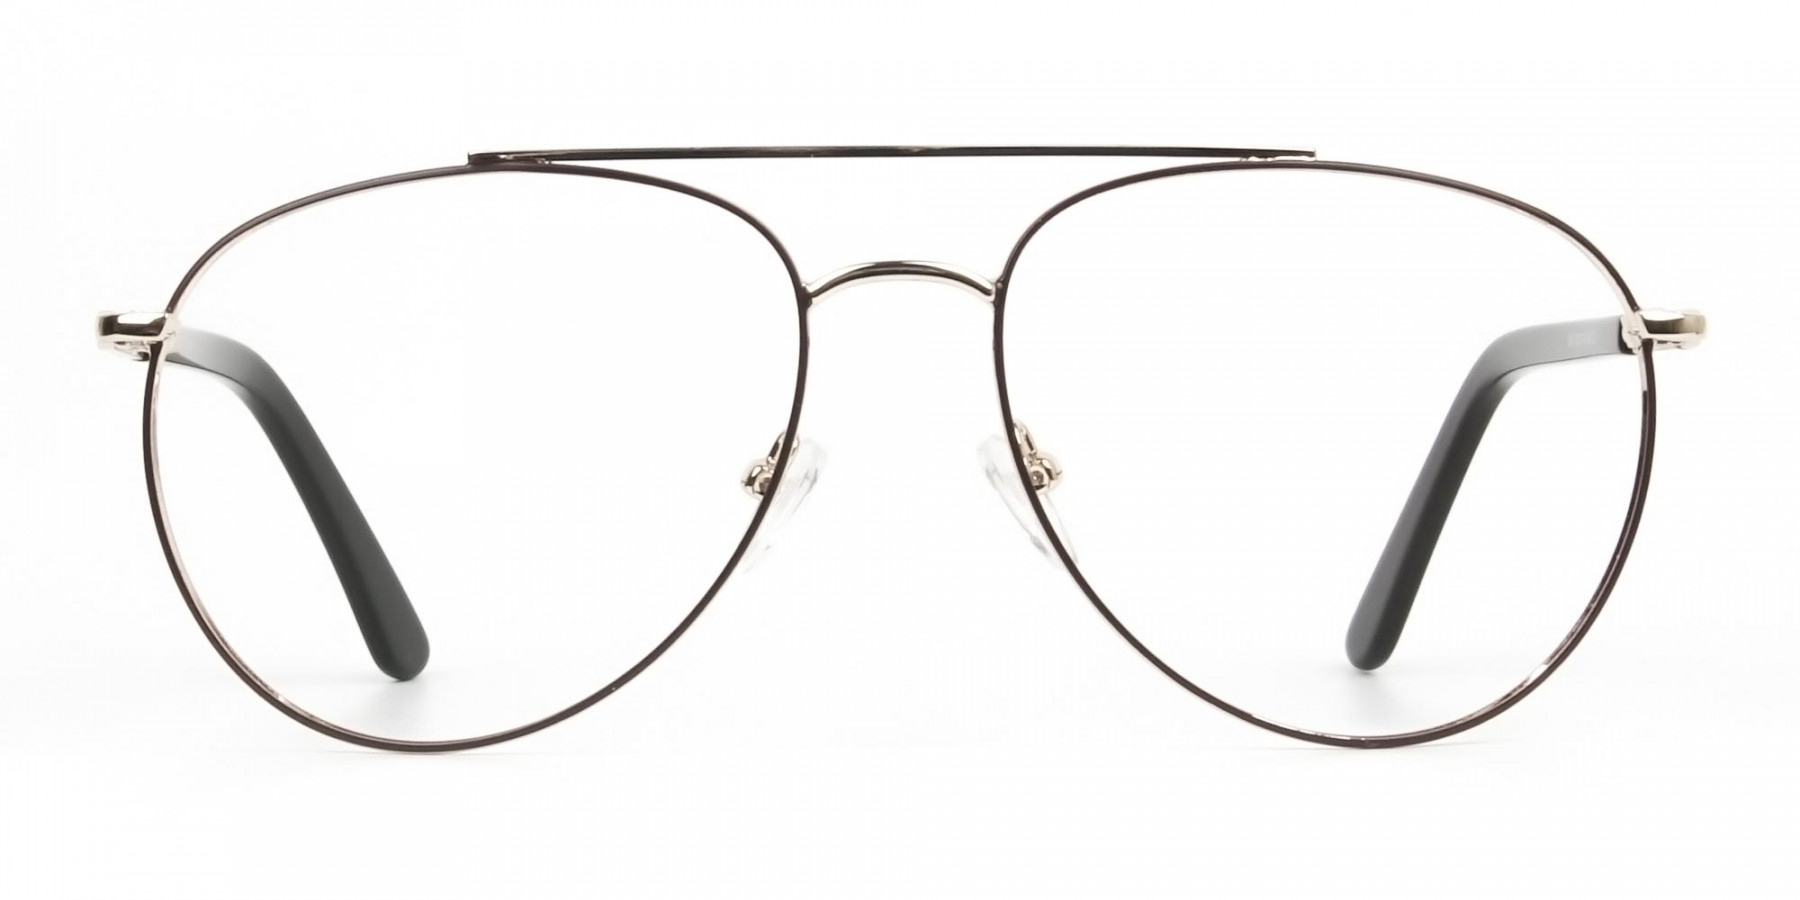 Ultralight Aviator Gold & Brown Glasses - 1